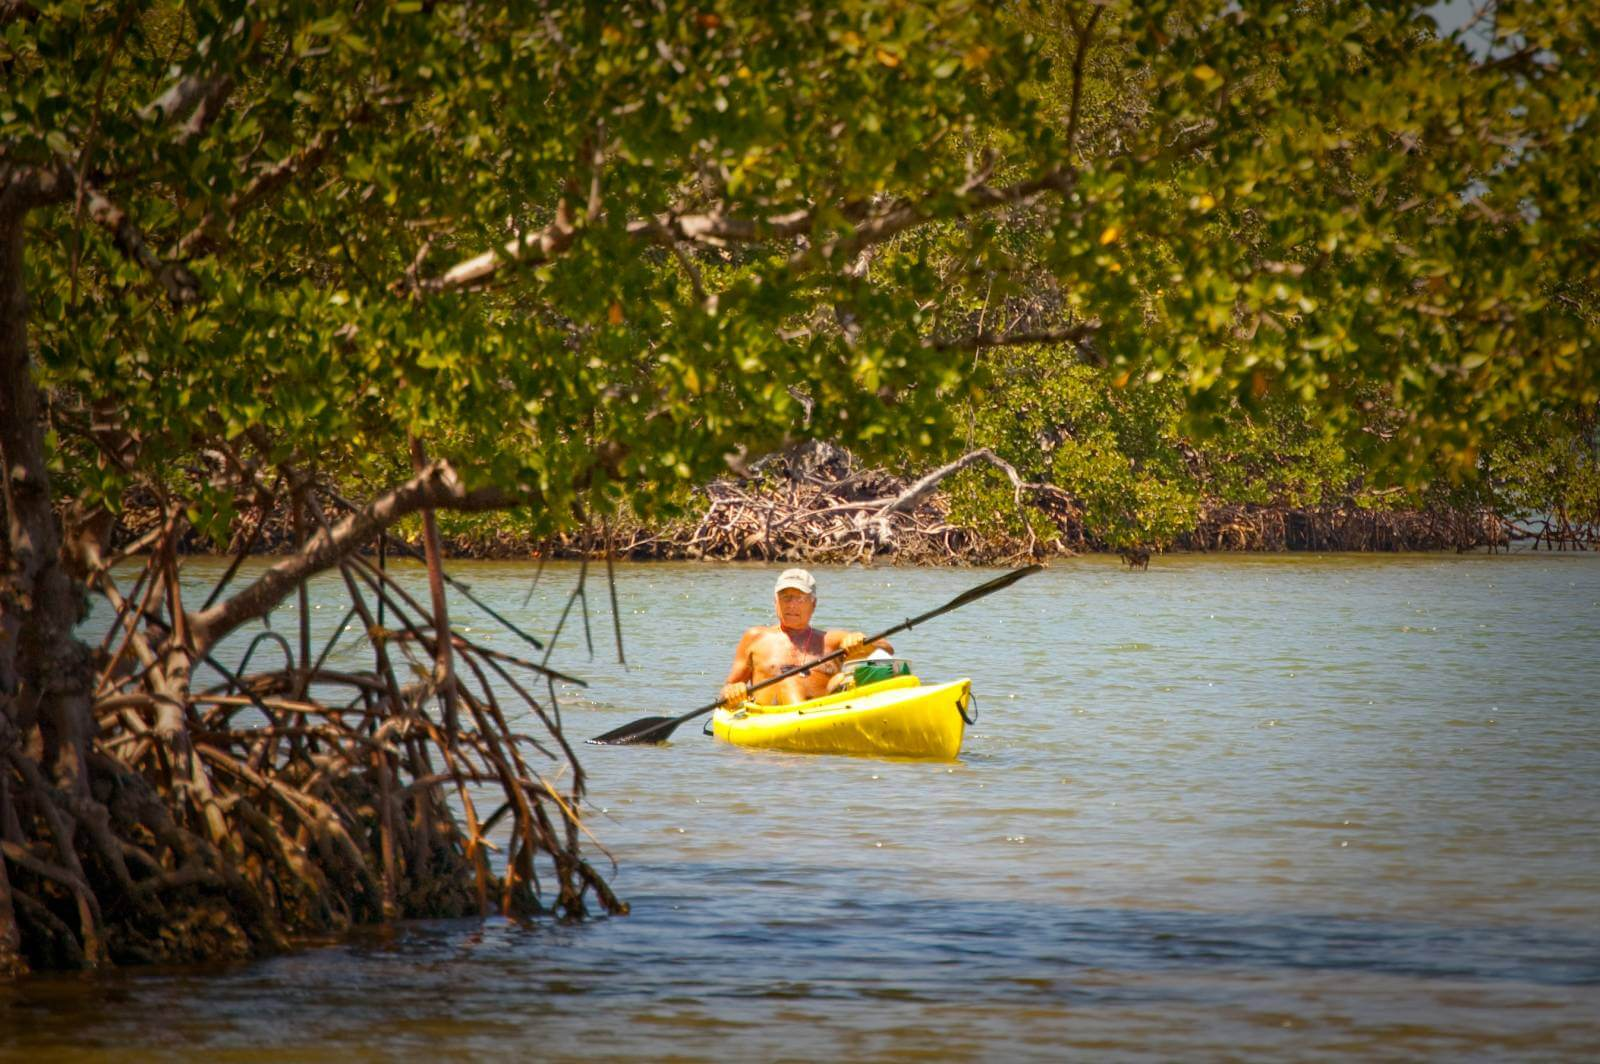 Southwest Florida's Great Calusa Blueway provides paddlers with 190 miles of waymarked kayaking trails through unspoiled waterways teaming with wildlife. Must Do Visitor Guides | MustDo.com